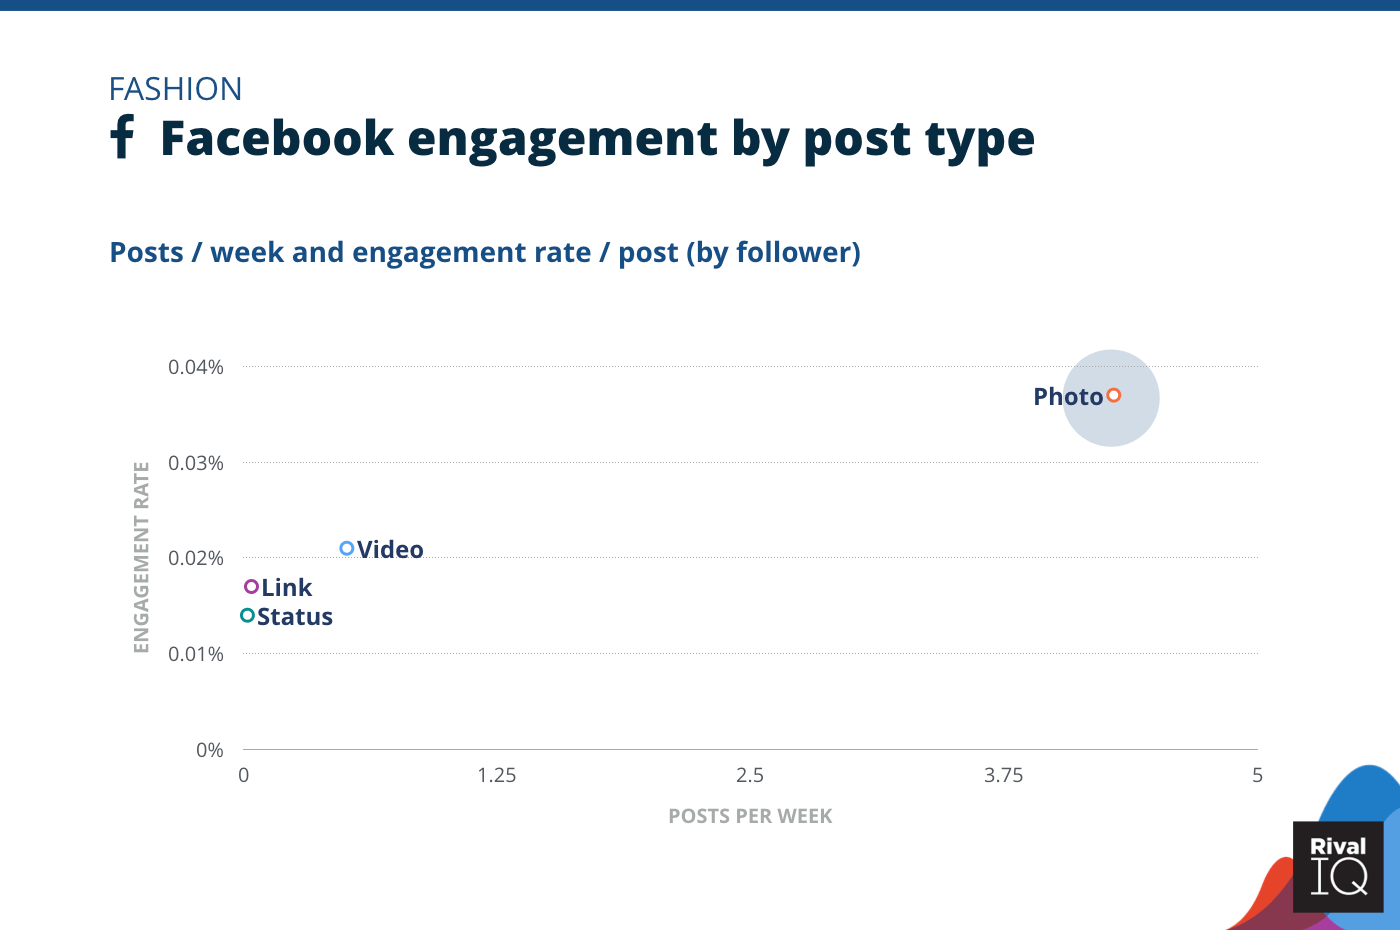 Chart of Facebook posts per week and engagement rate by post type, Fashion